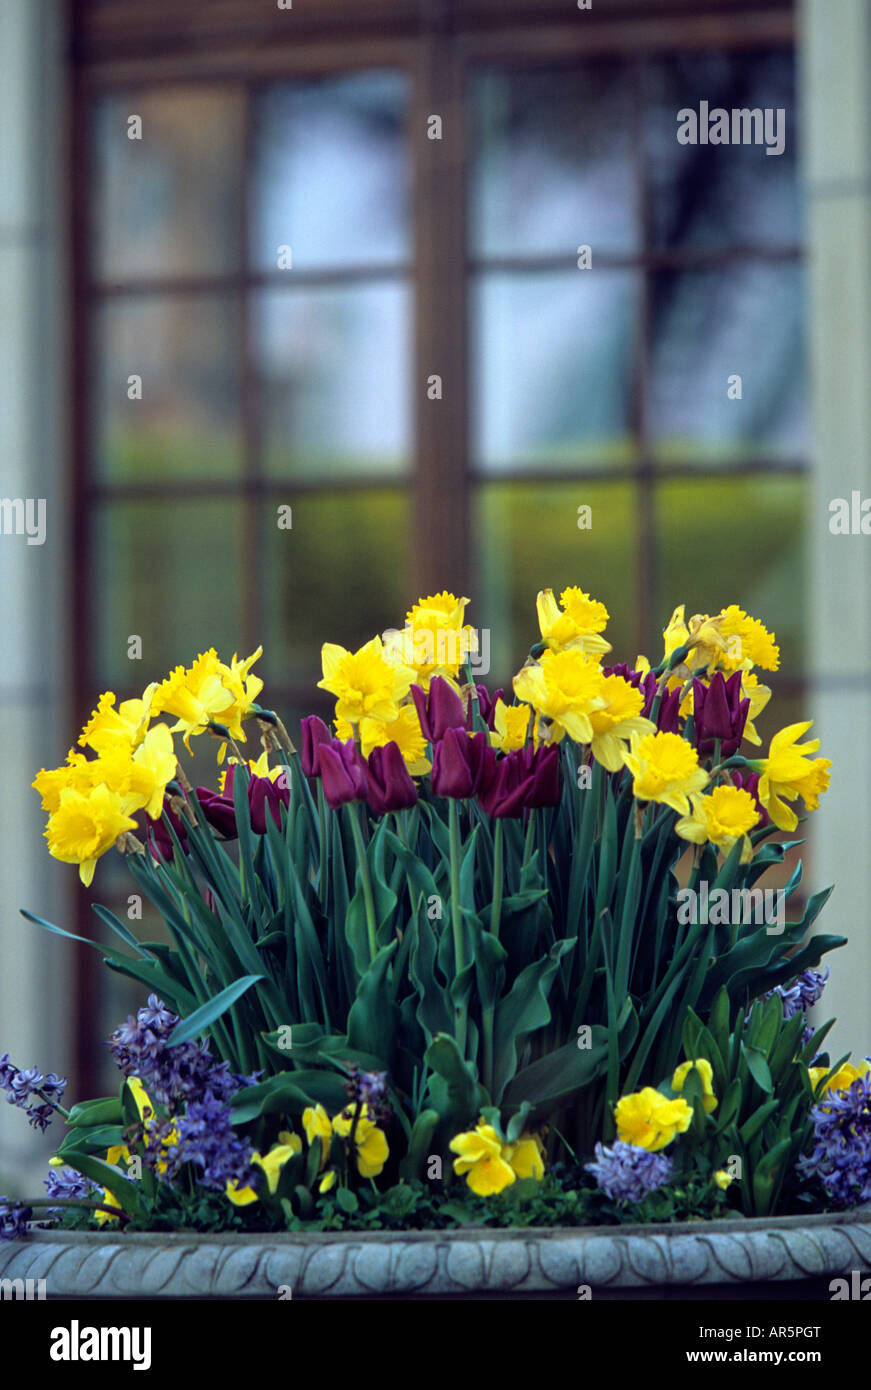 container of daffodils tulips pansies and grape hyacinths at